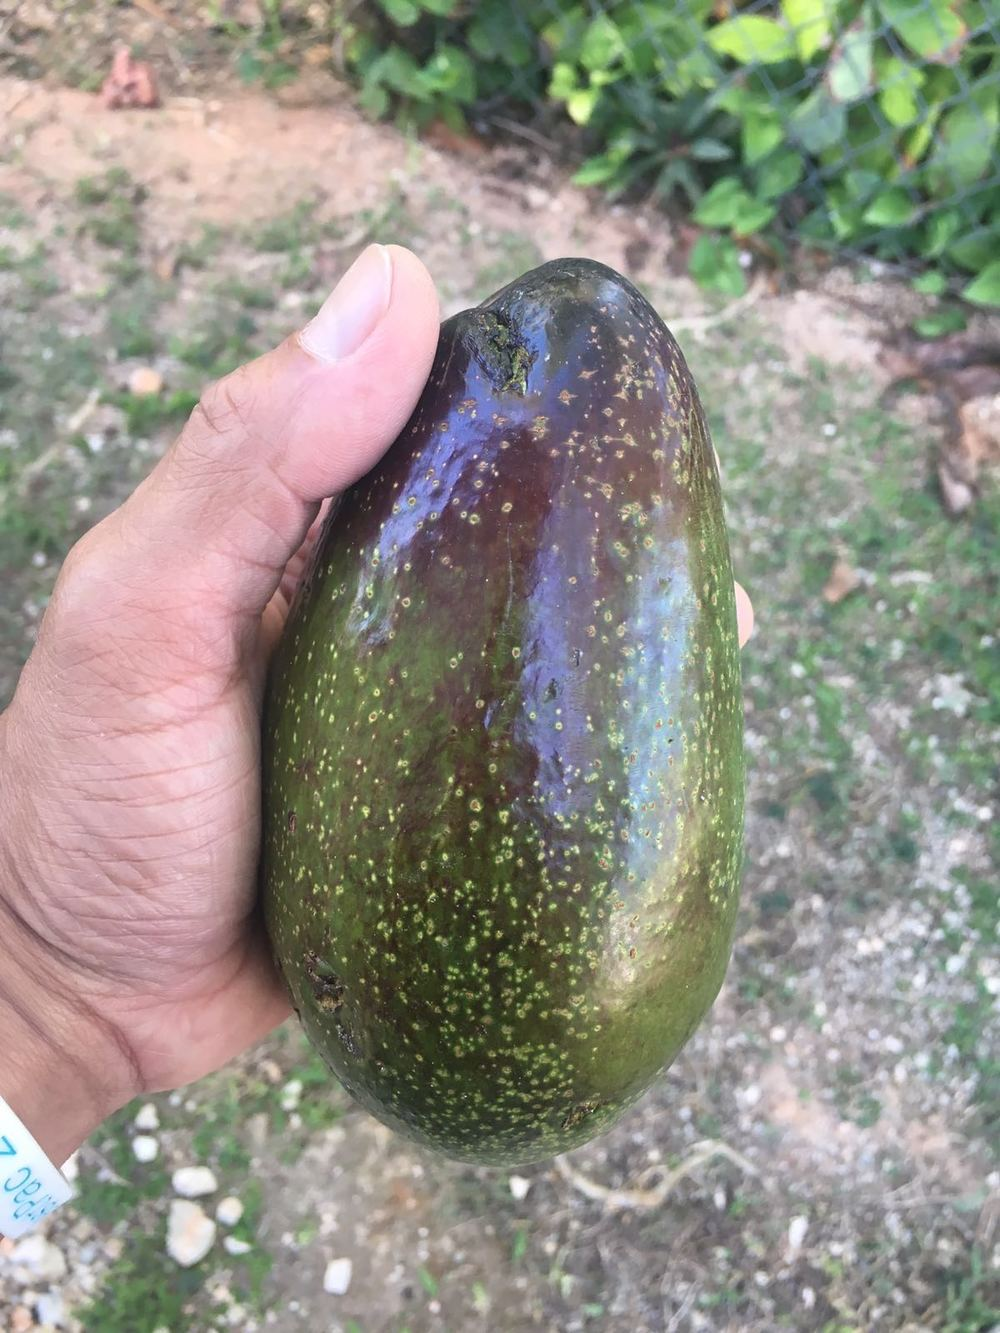 The morning's harvest - fresh avocado